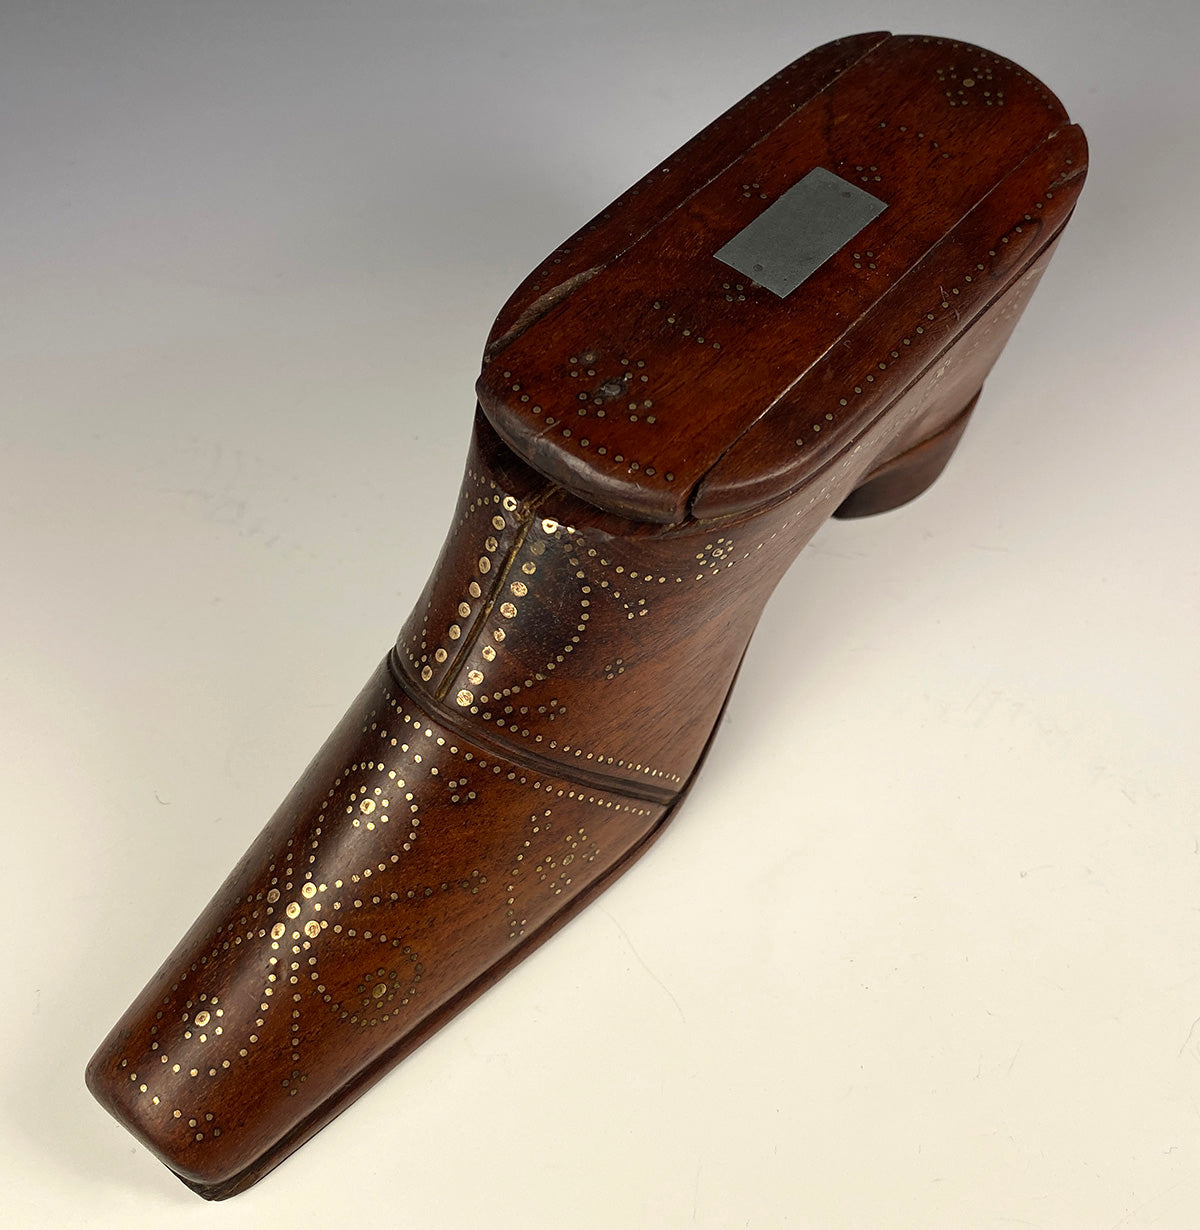 "Antique c.1700s French Boot or Shoe Snuff Box, Large Pique Table Snuff is 6.75"" Long"